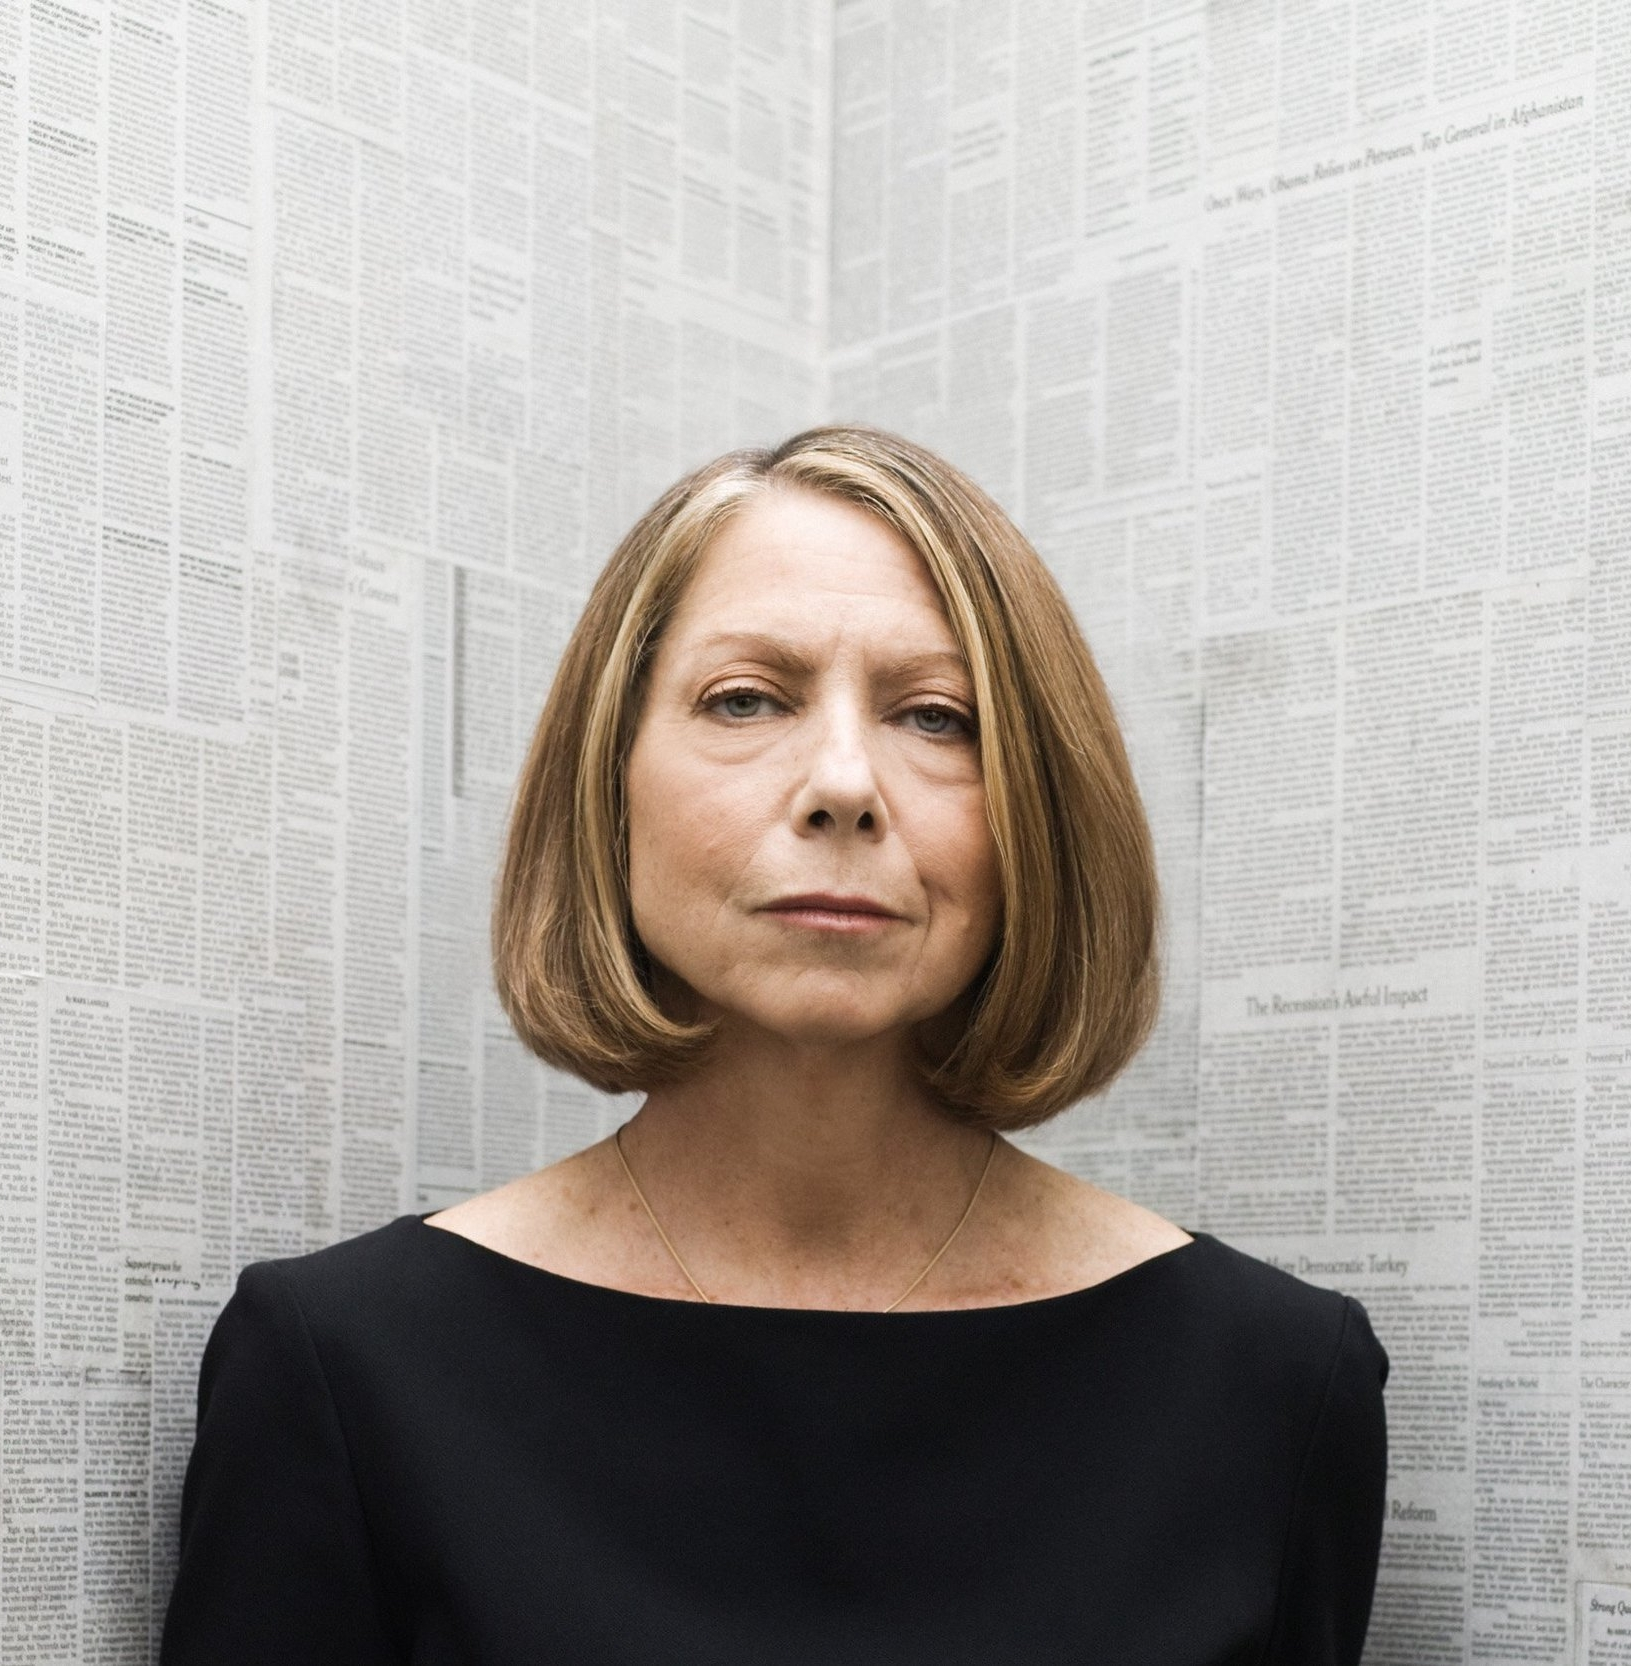 Jill Abramson - First female executive editor of The New York Times